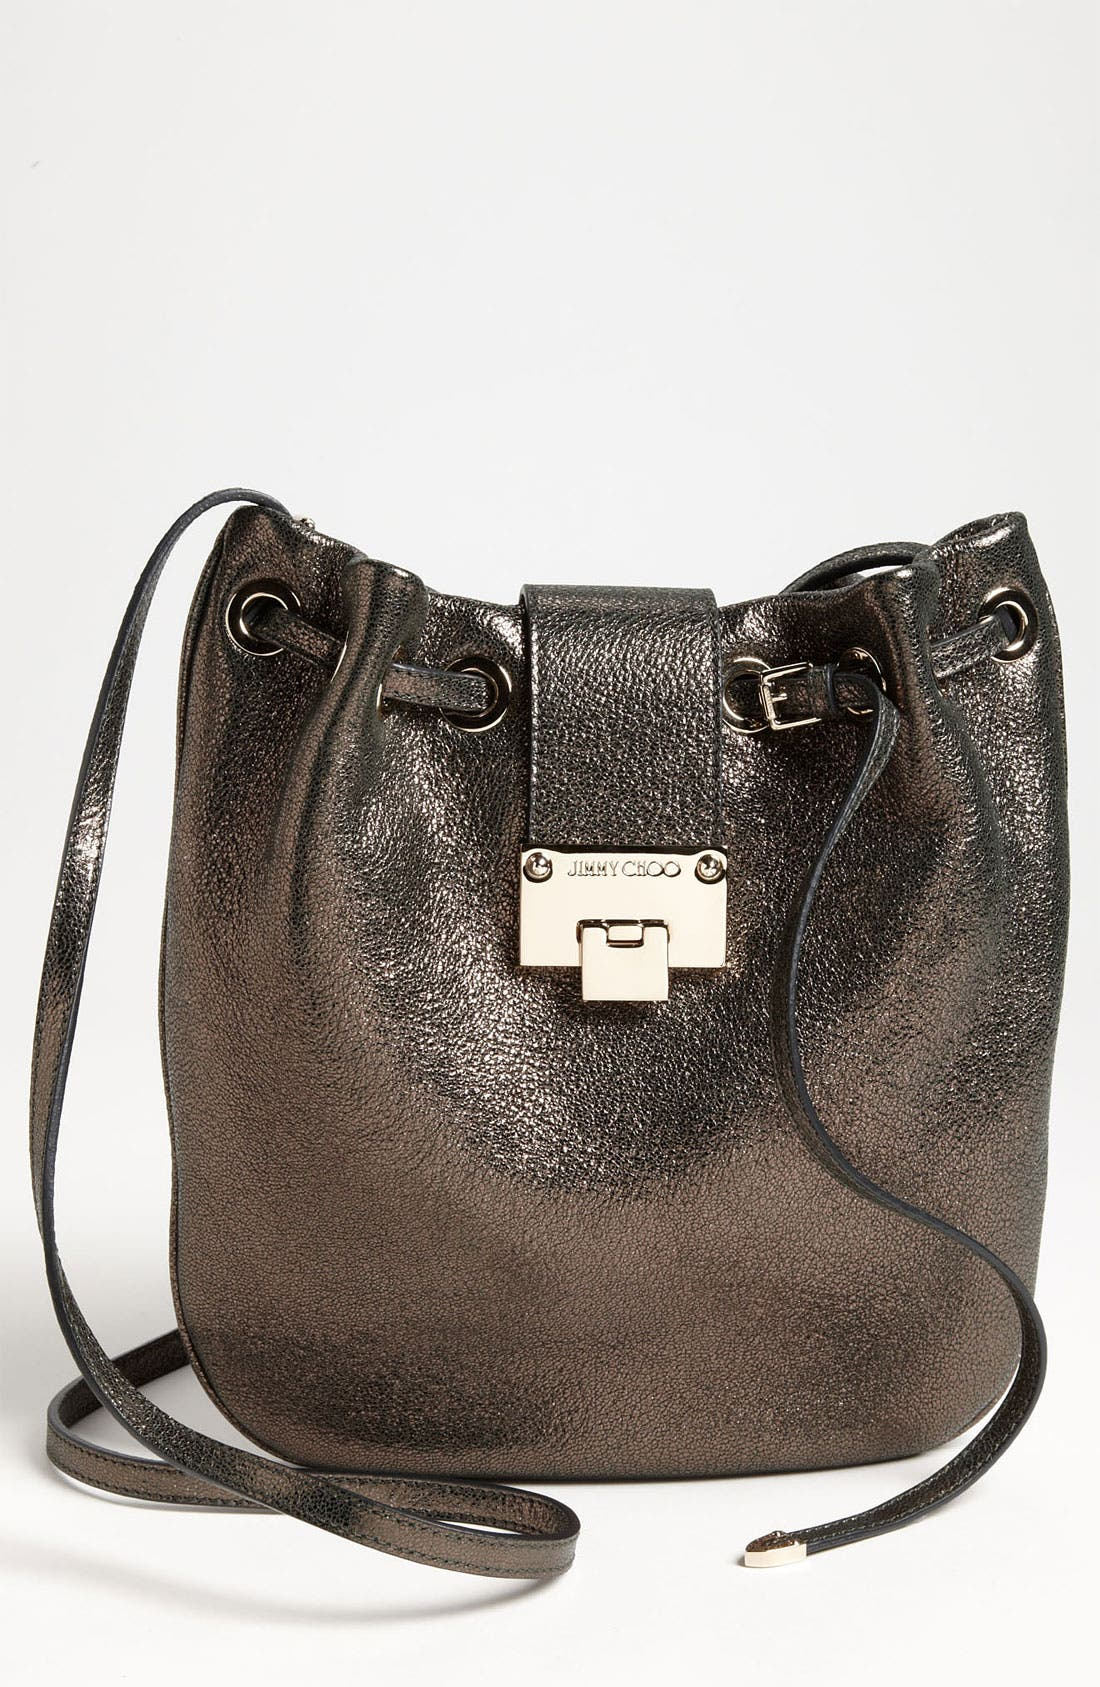 Main Image - Jimmy Choo 'Ryad' Glitter Leather Crossbody Bag